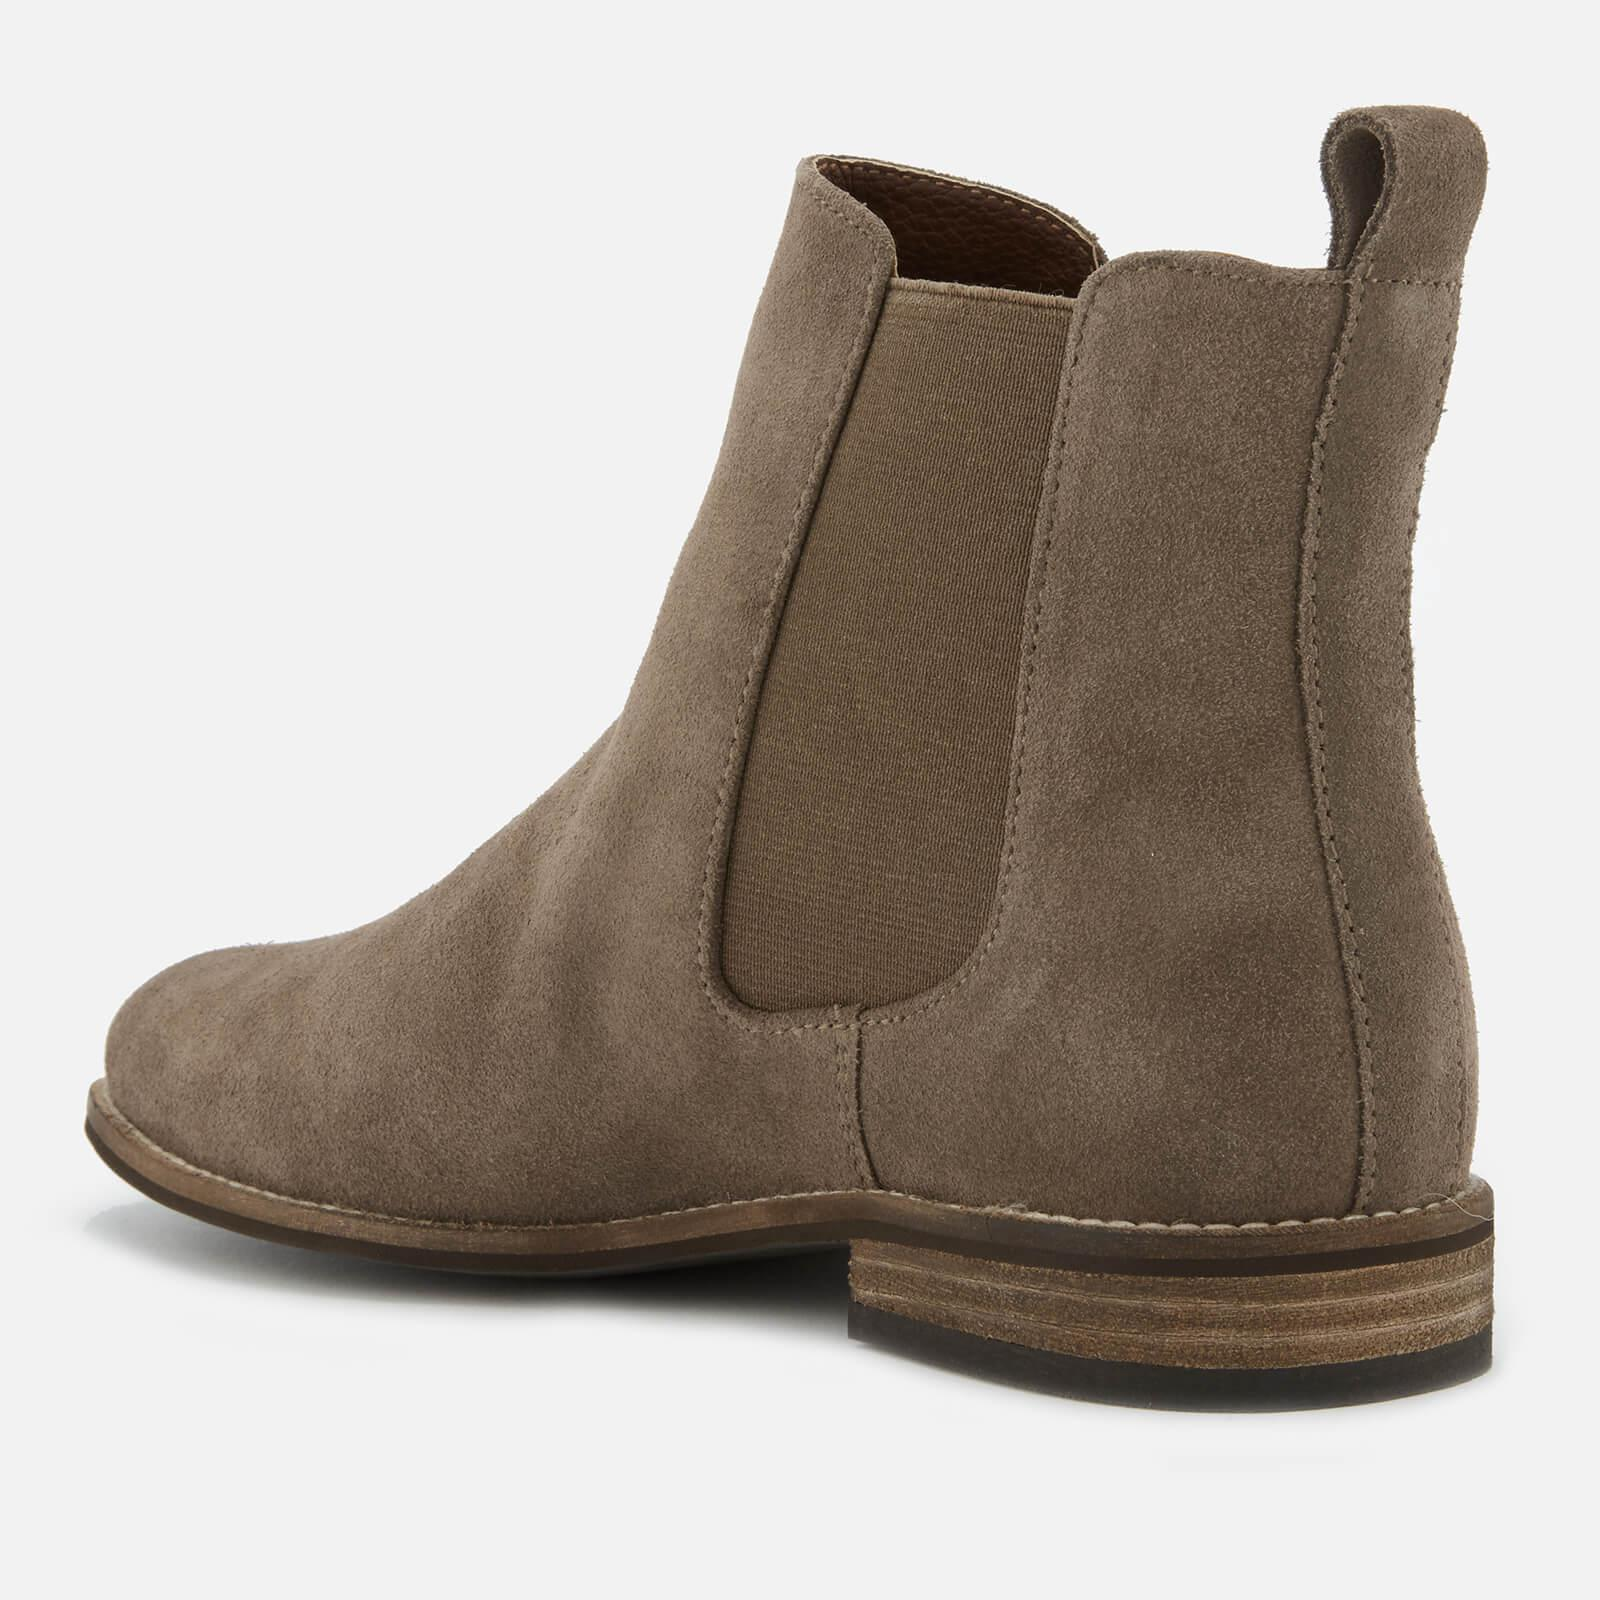 1073ea6855465 Superdry Millie-lou Suede Chelsea Boots in Brown - Save 28% - Lyst